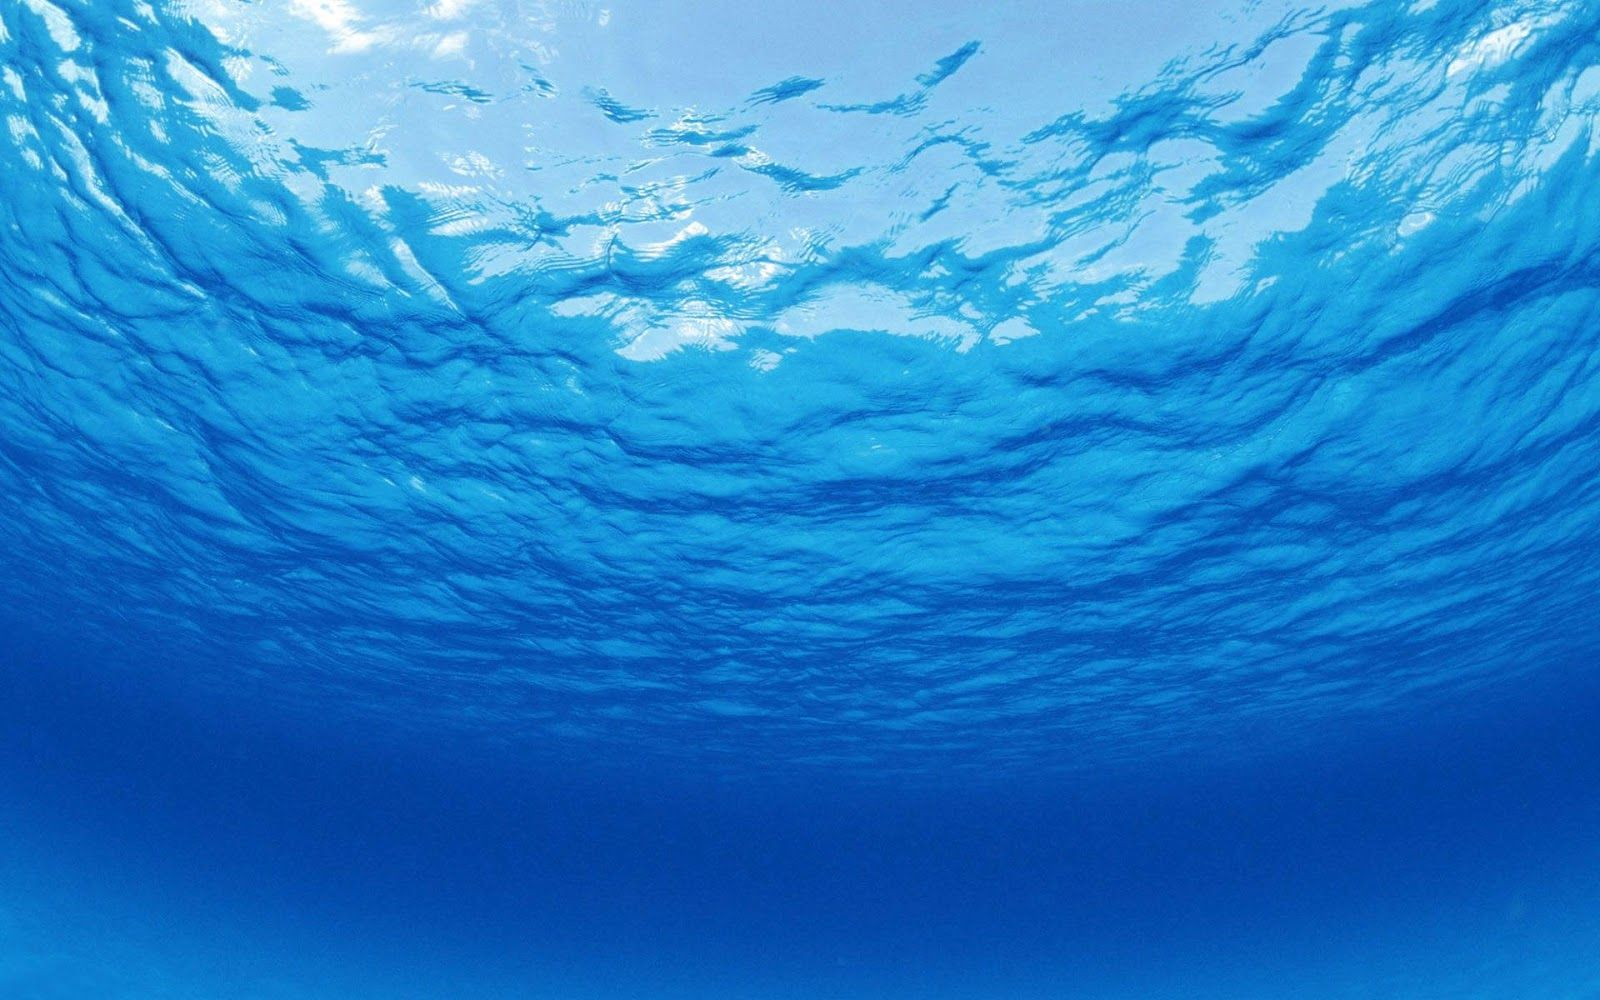 Hd Ocean Background Wpawpartco